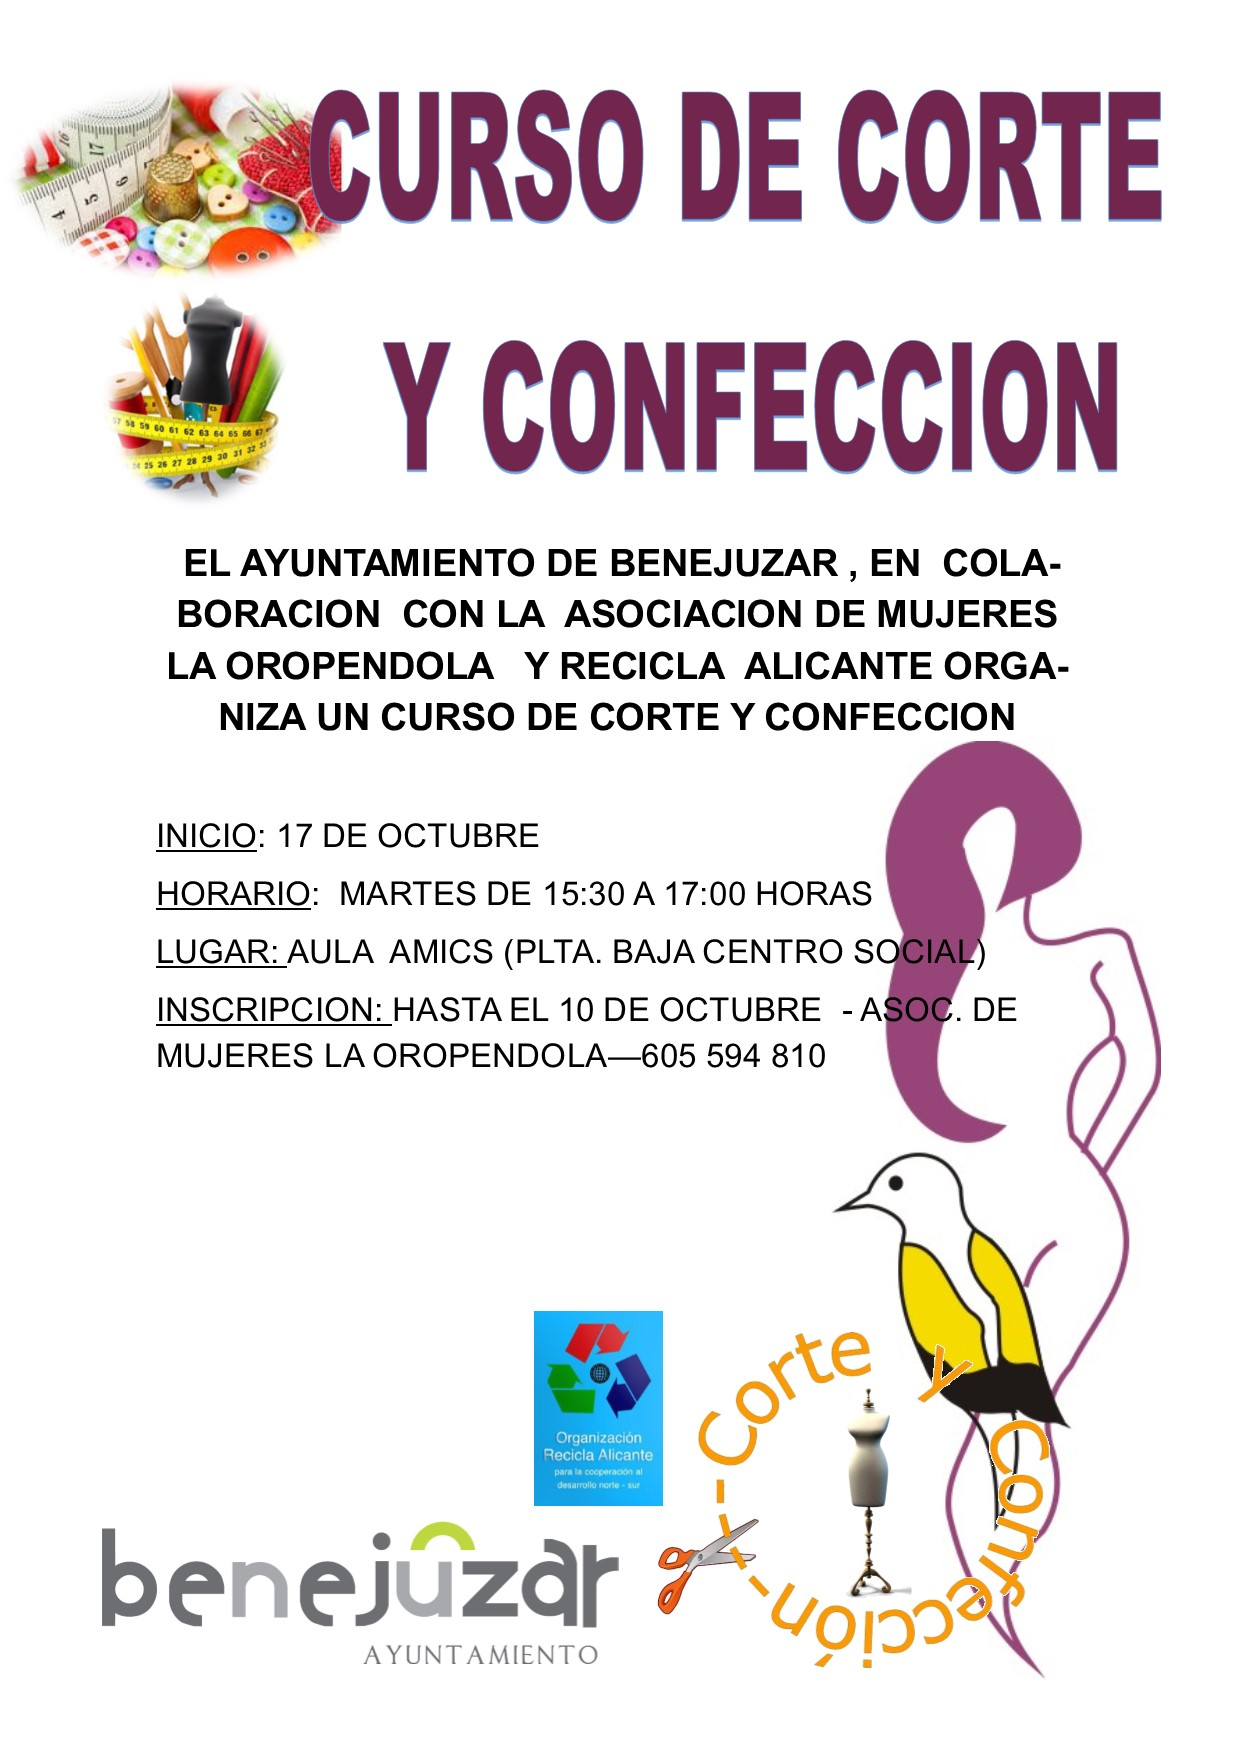 CORTEYCONFECCION